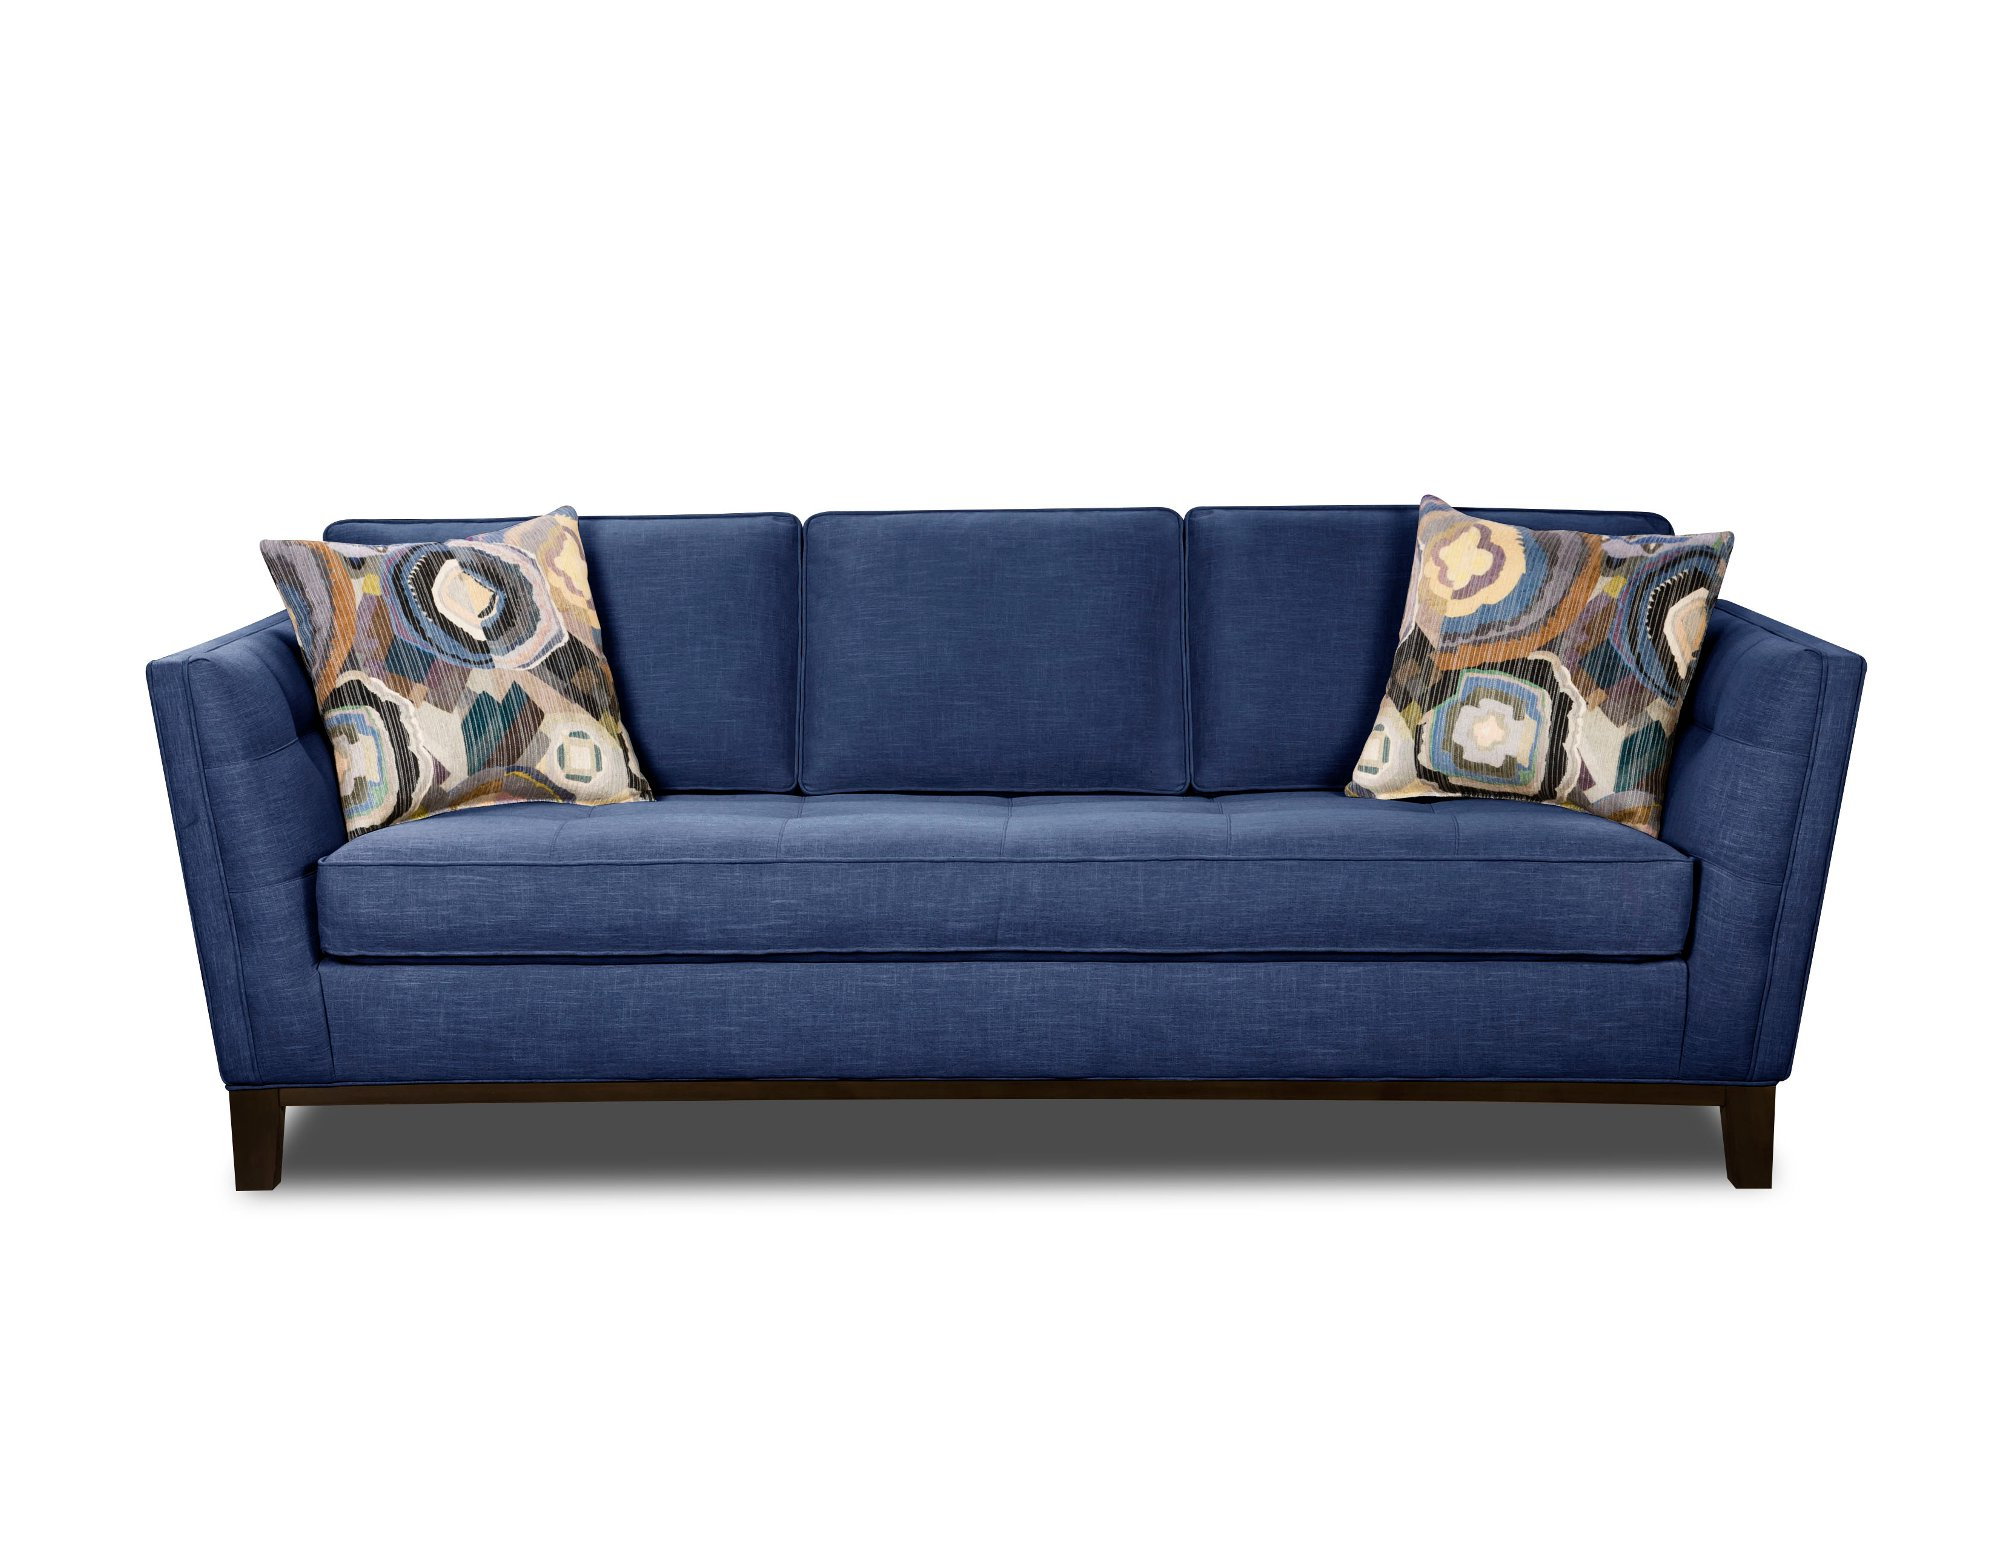 Modern Blue Sofa Modern Contemporary Cobalt Blue Sofa For Well Known Dulce Mid Century Chaise Sofas Dark Blue (View 13 of 25)